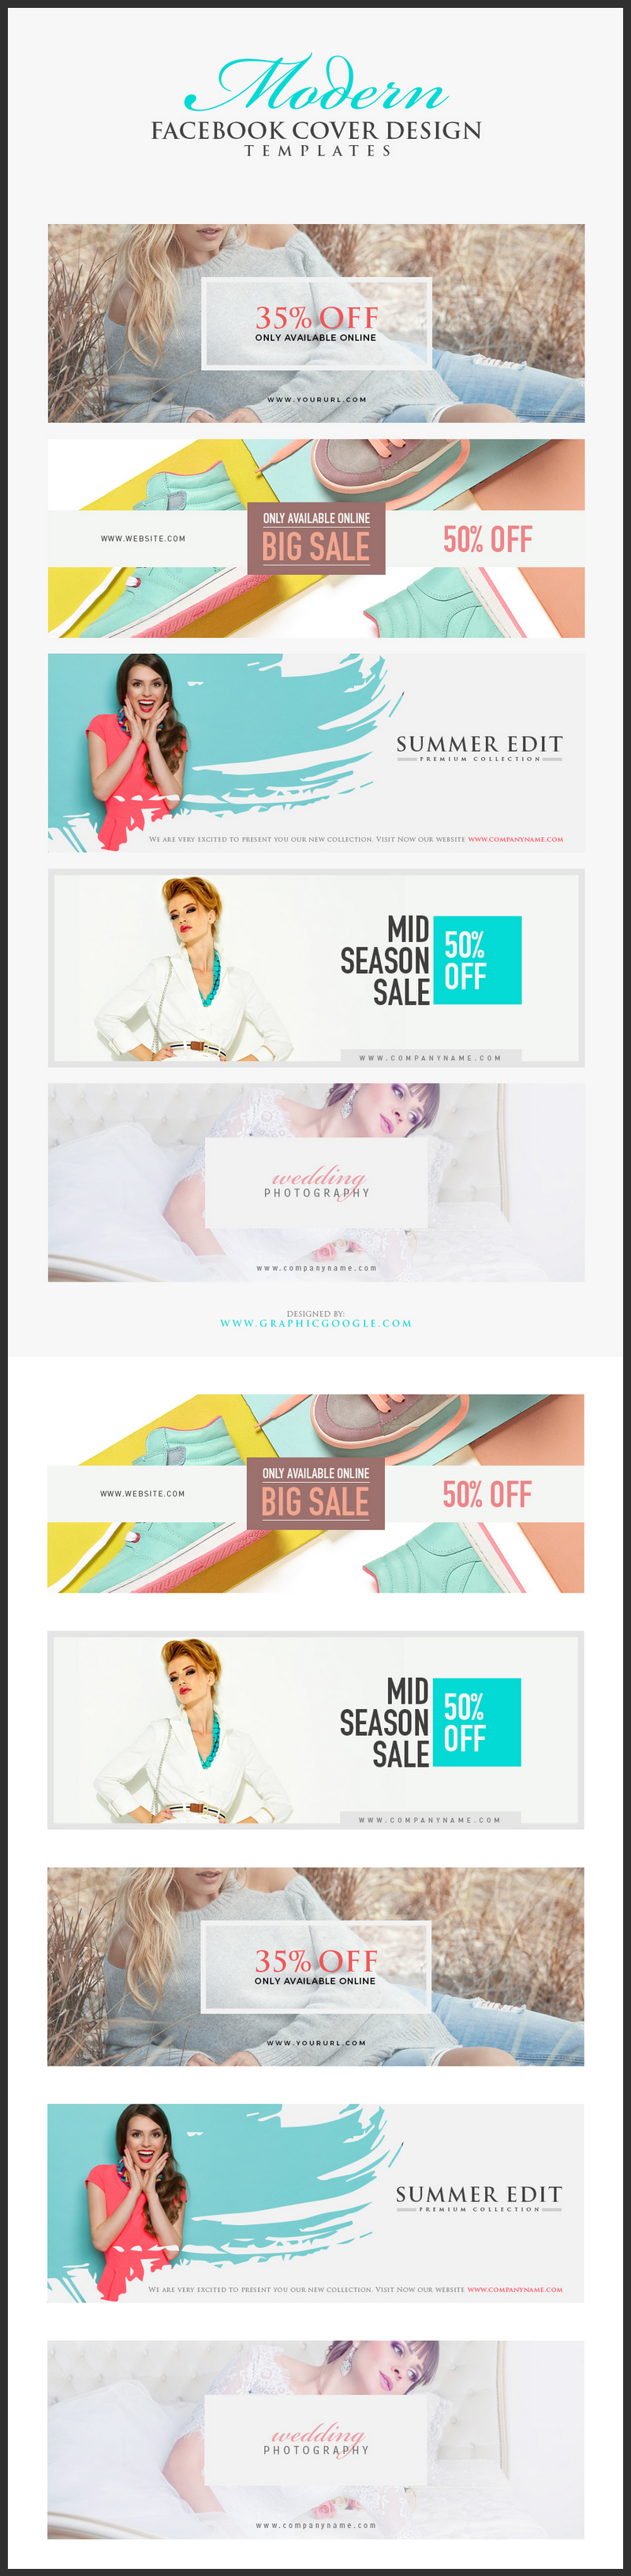 5 free facebook business cover templates psd bypeople this pack includes 5 psd stand alone templates fully layered and editable ready to use for facebook business sale covers special promos etc accmission Choice Image